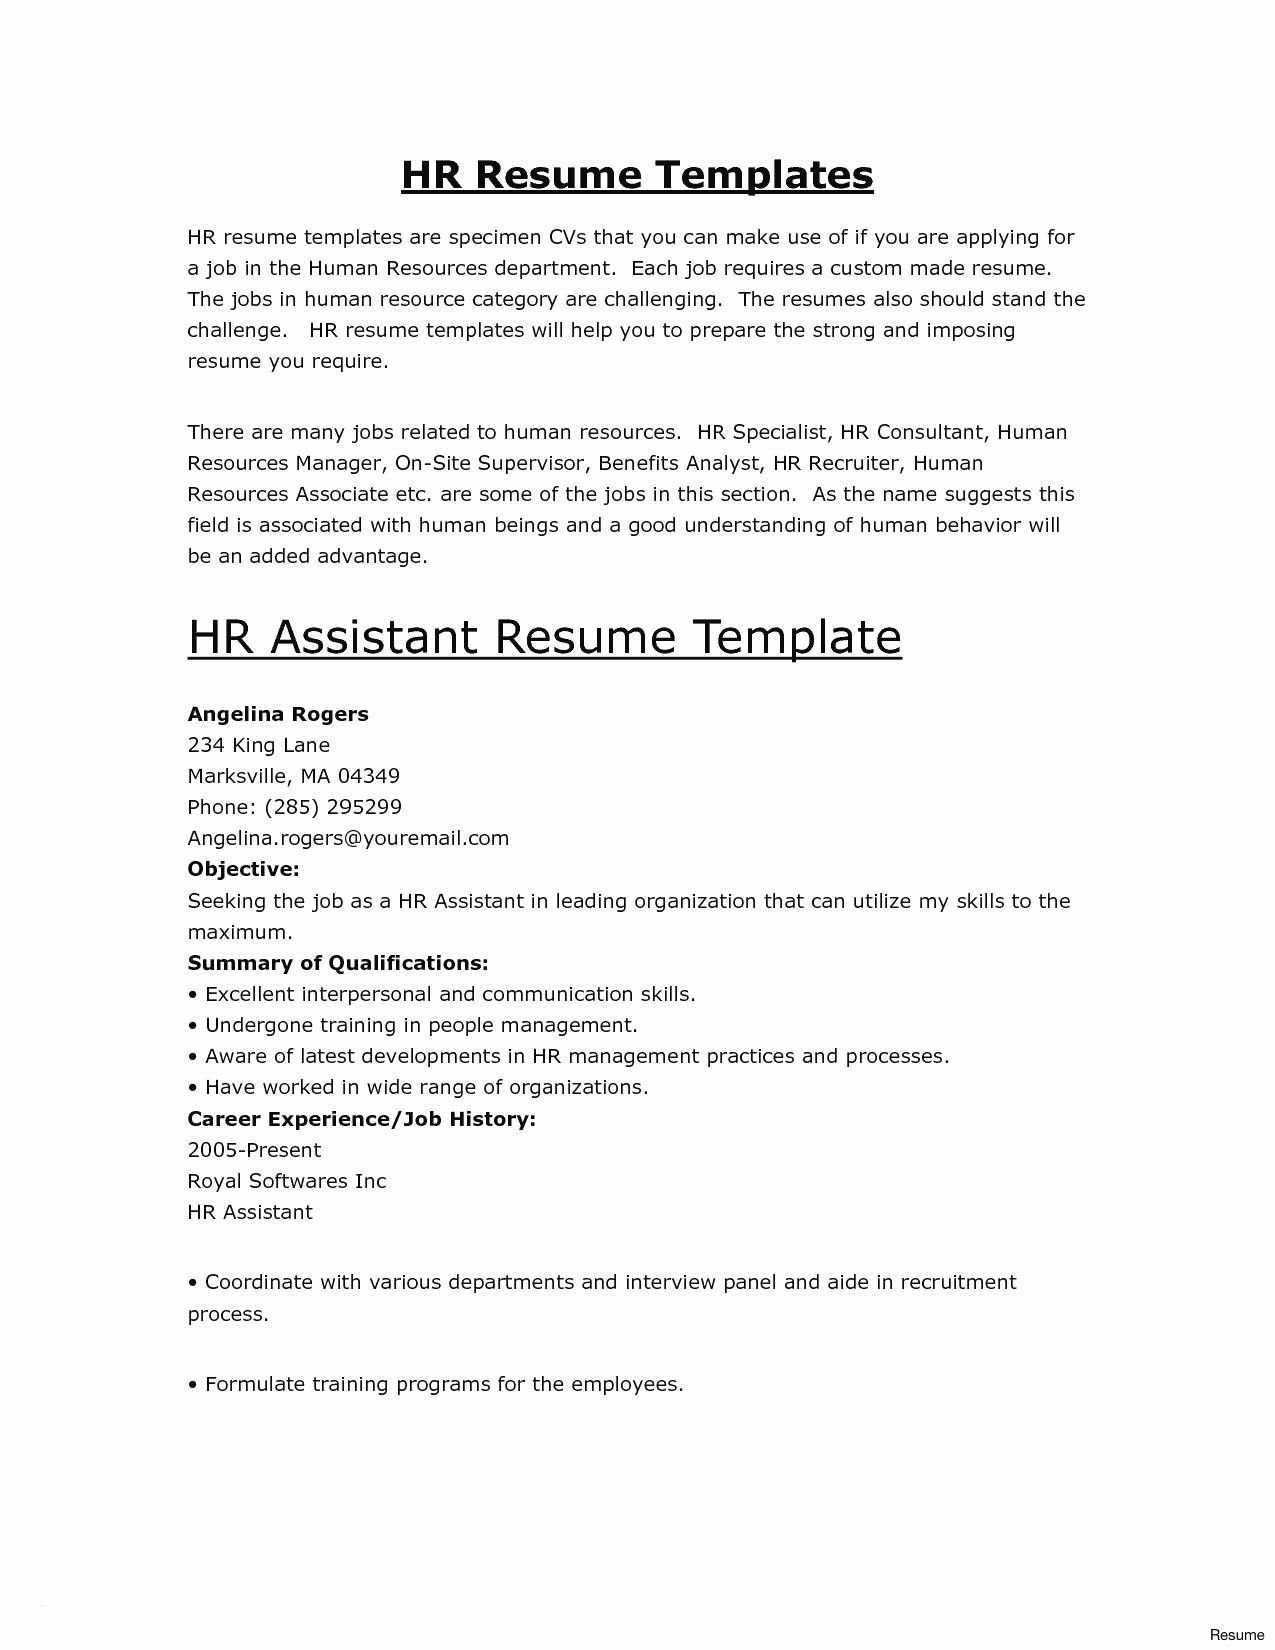 Need Help with Resume - Resume Job Description Best Self Employed Resume New Luxury